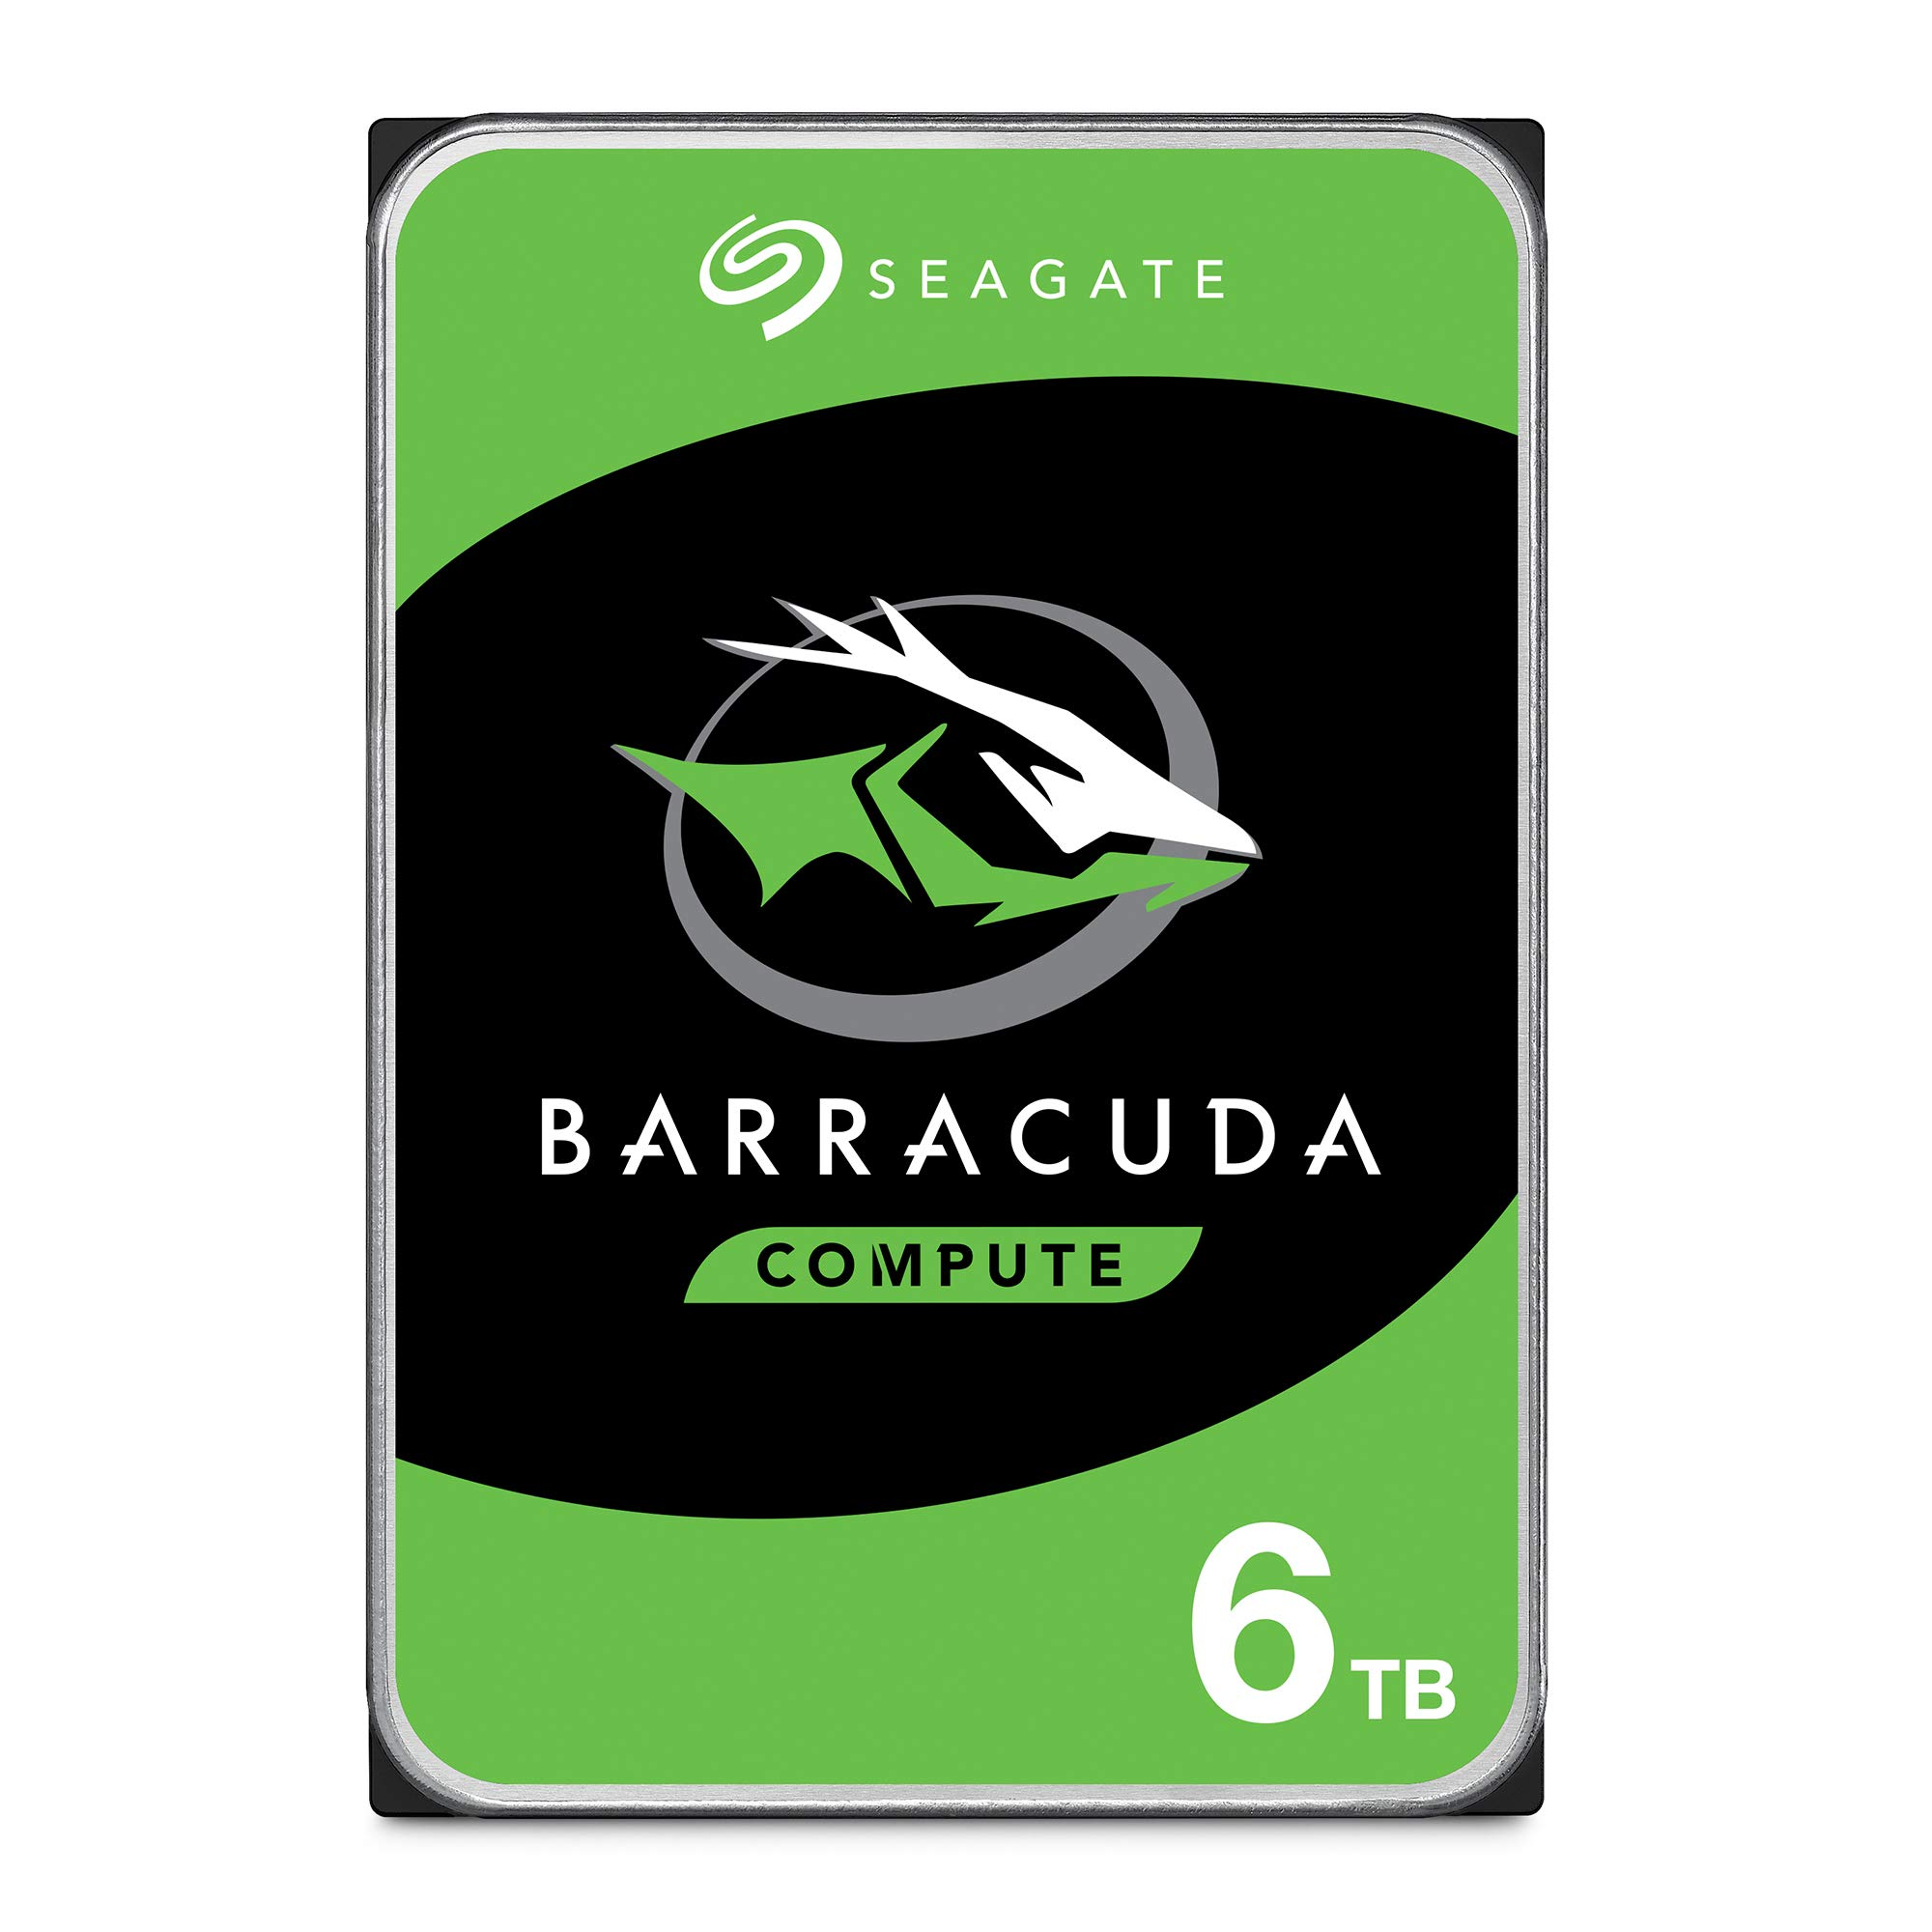 Seagate Barracuda 6TB Internal Hard Drive HDD - 3.5 Inch SATA 6 Gb/s 5400 RPM 256MB Cache for Computer Desktop PC (ST6000DM003)